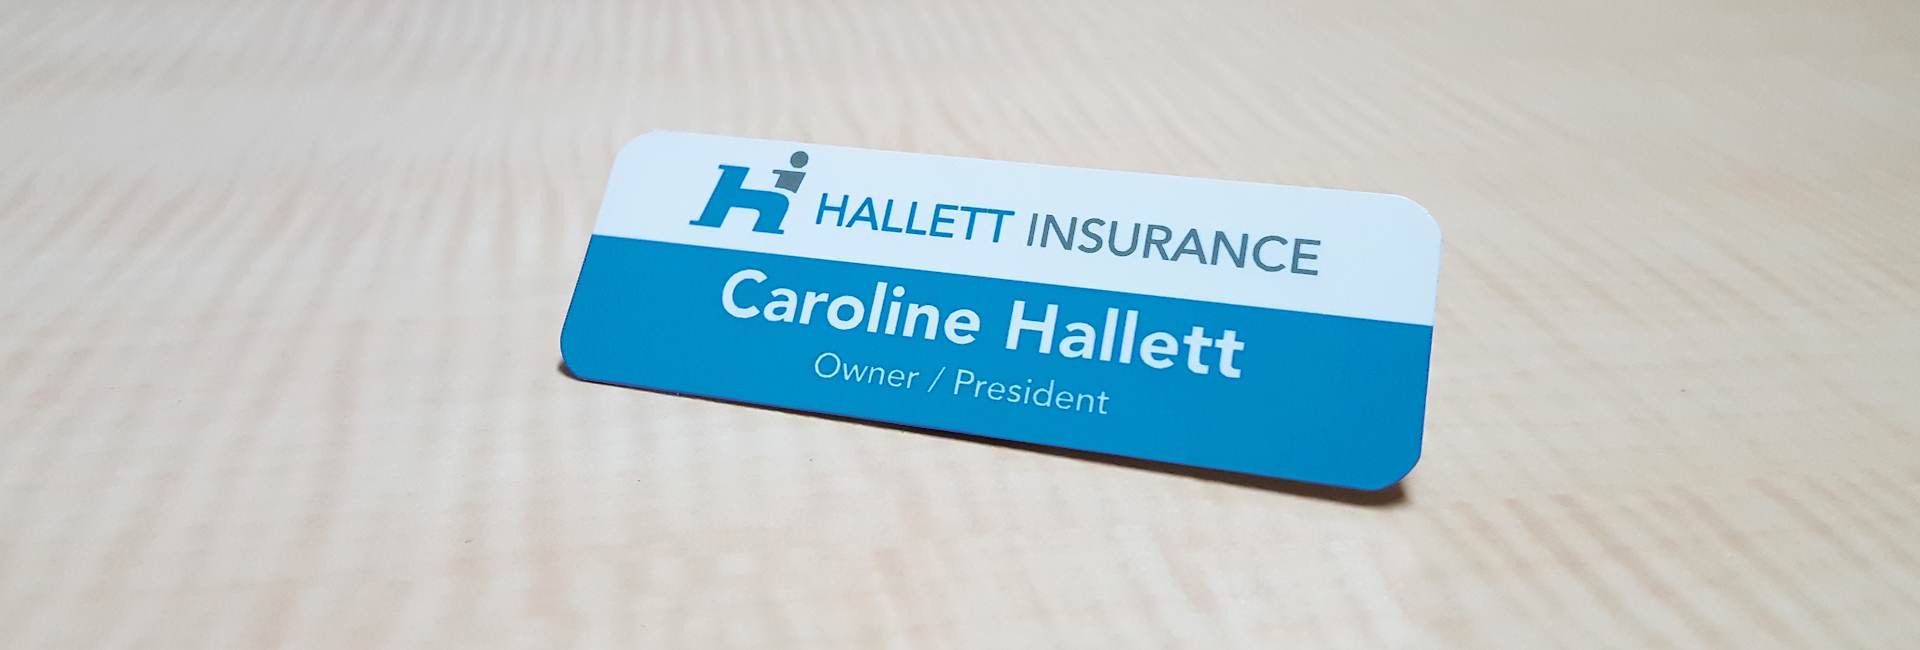 hallettinsurance-nametag